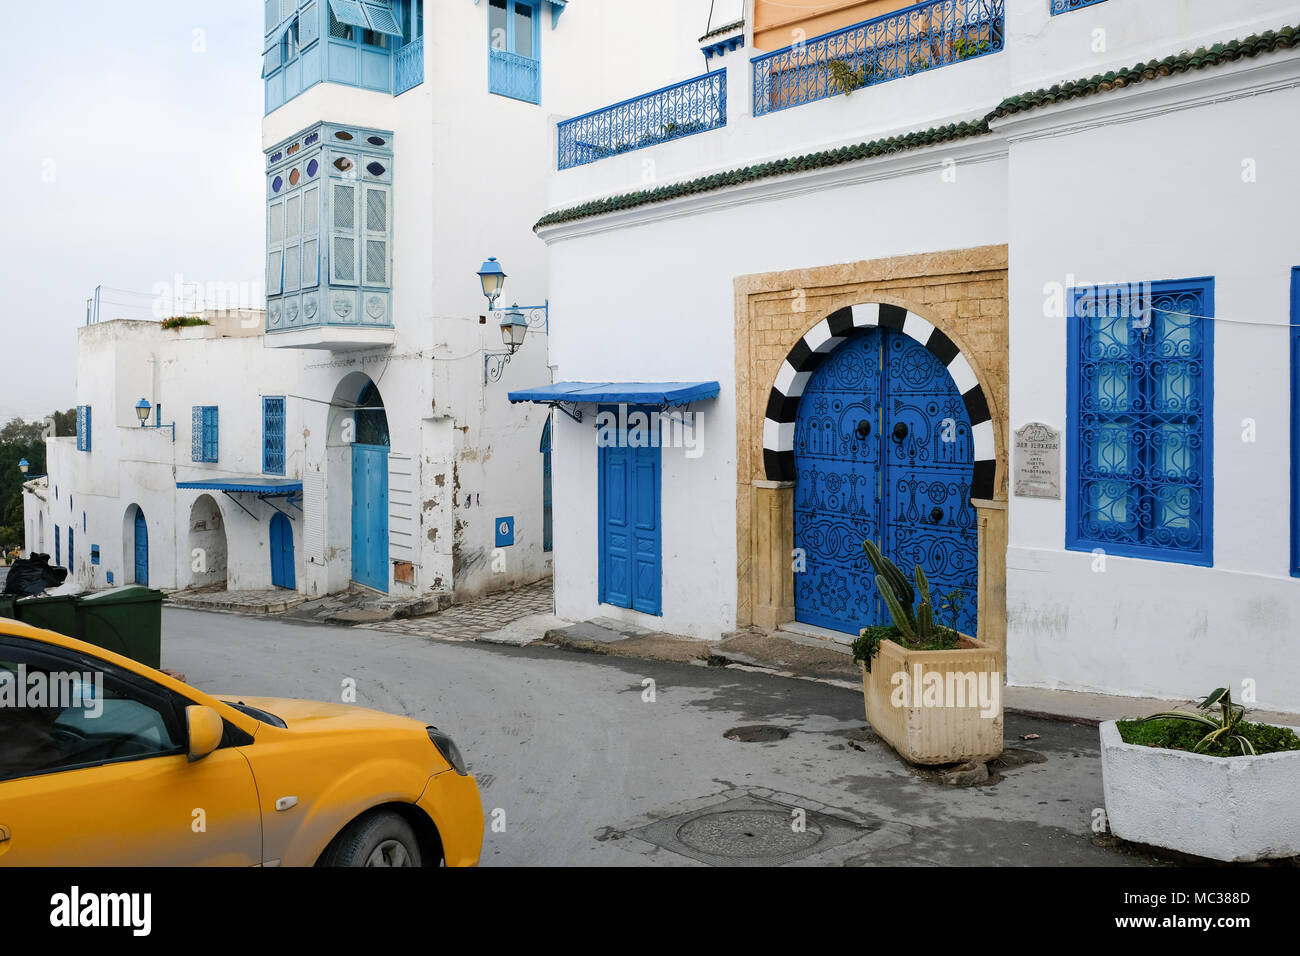 A taxi in Sidi Bou Said, in Tunesia. The city is painted in white and blue for the most part Stock Photo